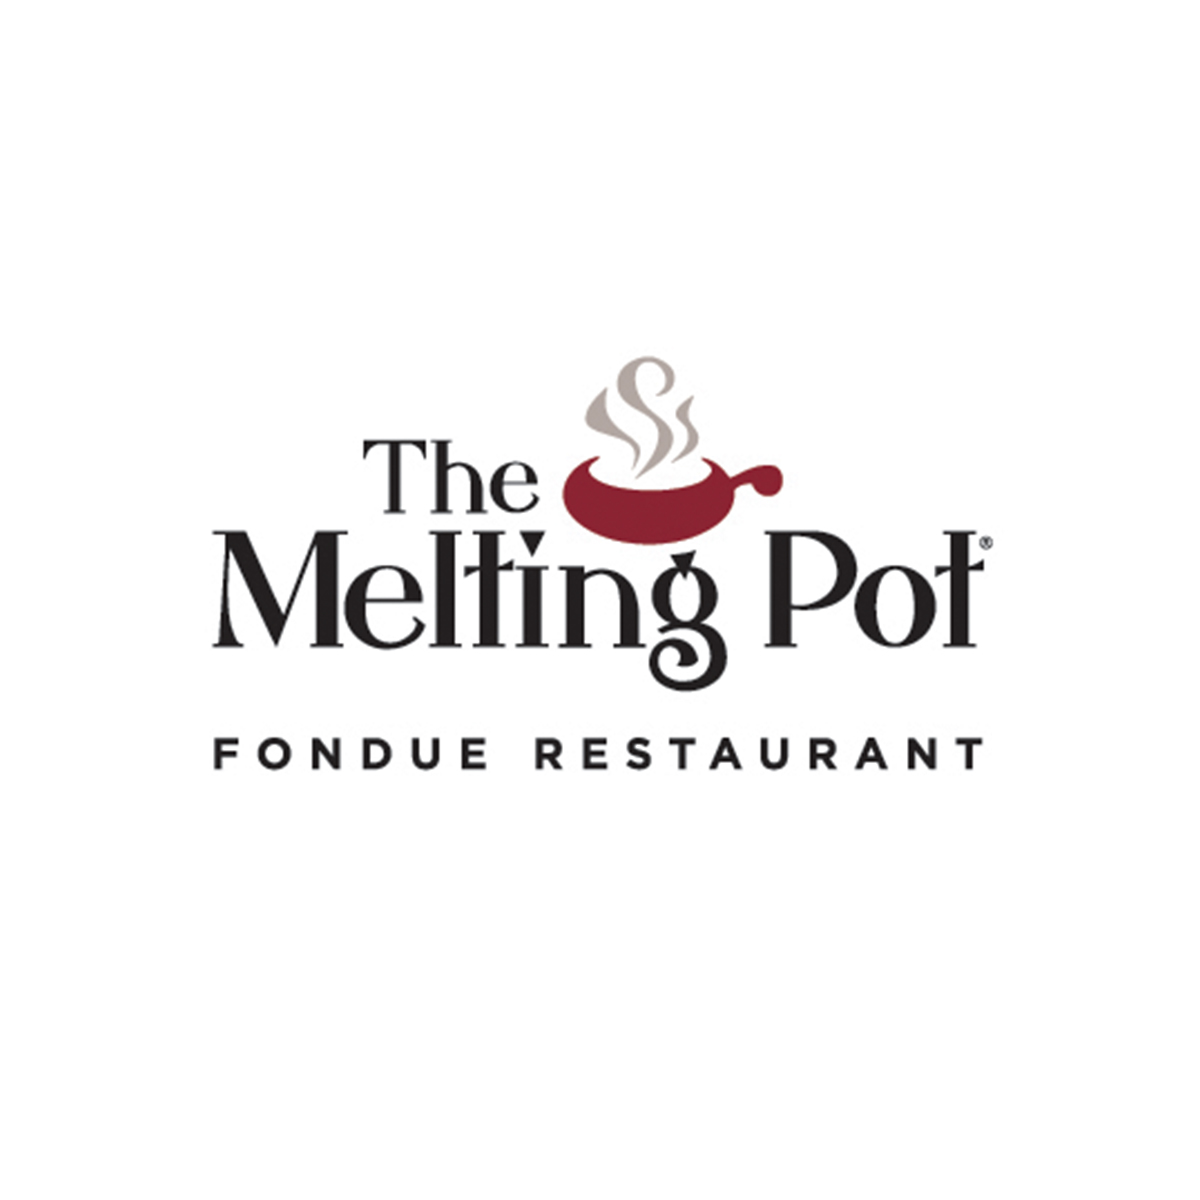 Melting Pot Logo SMCB.jpg